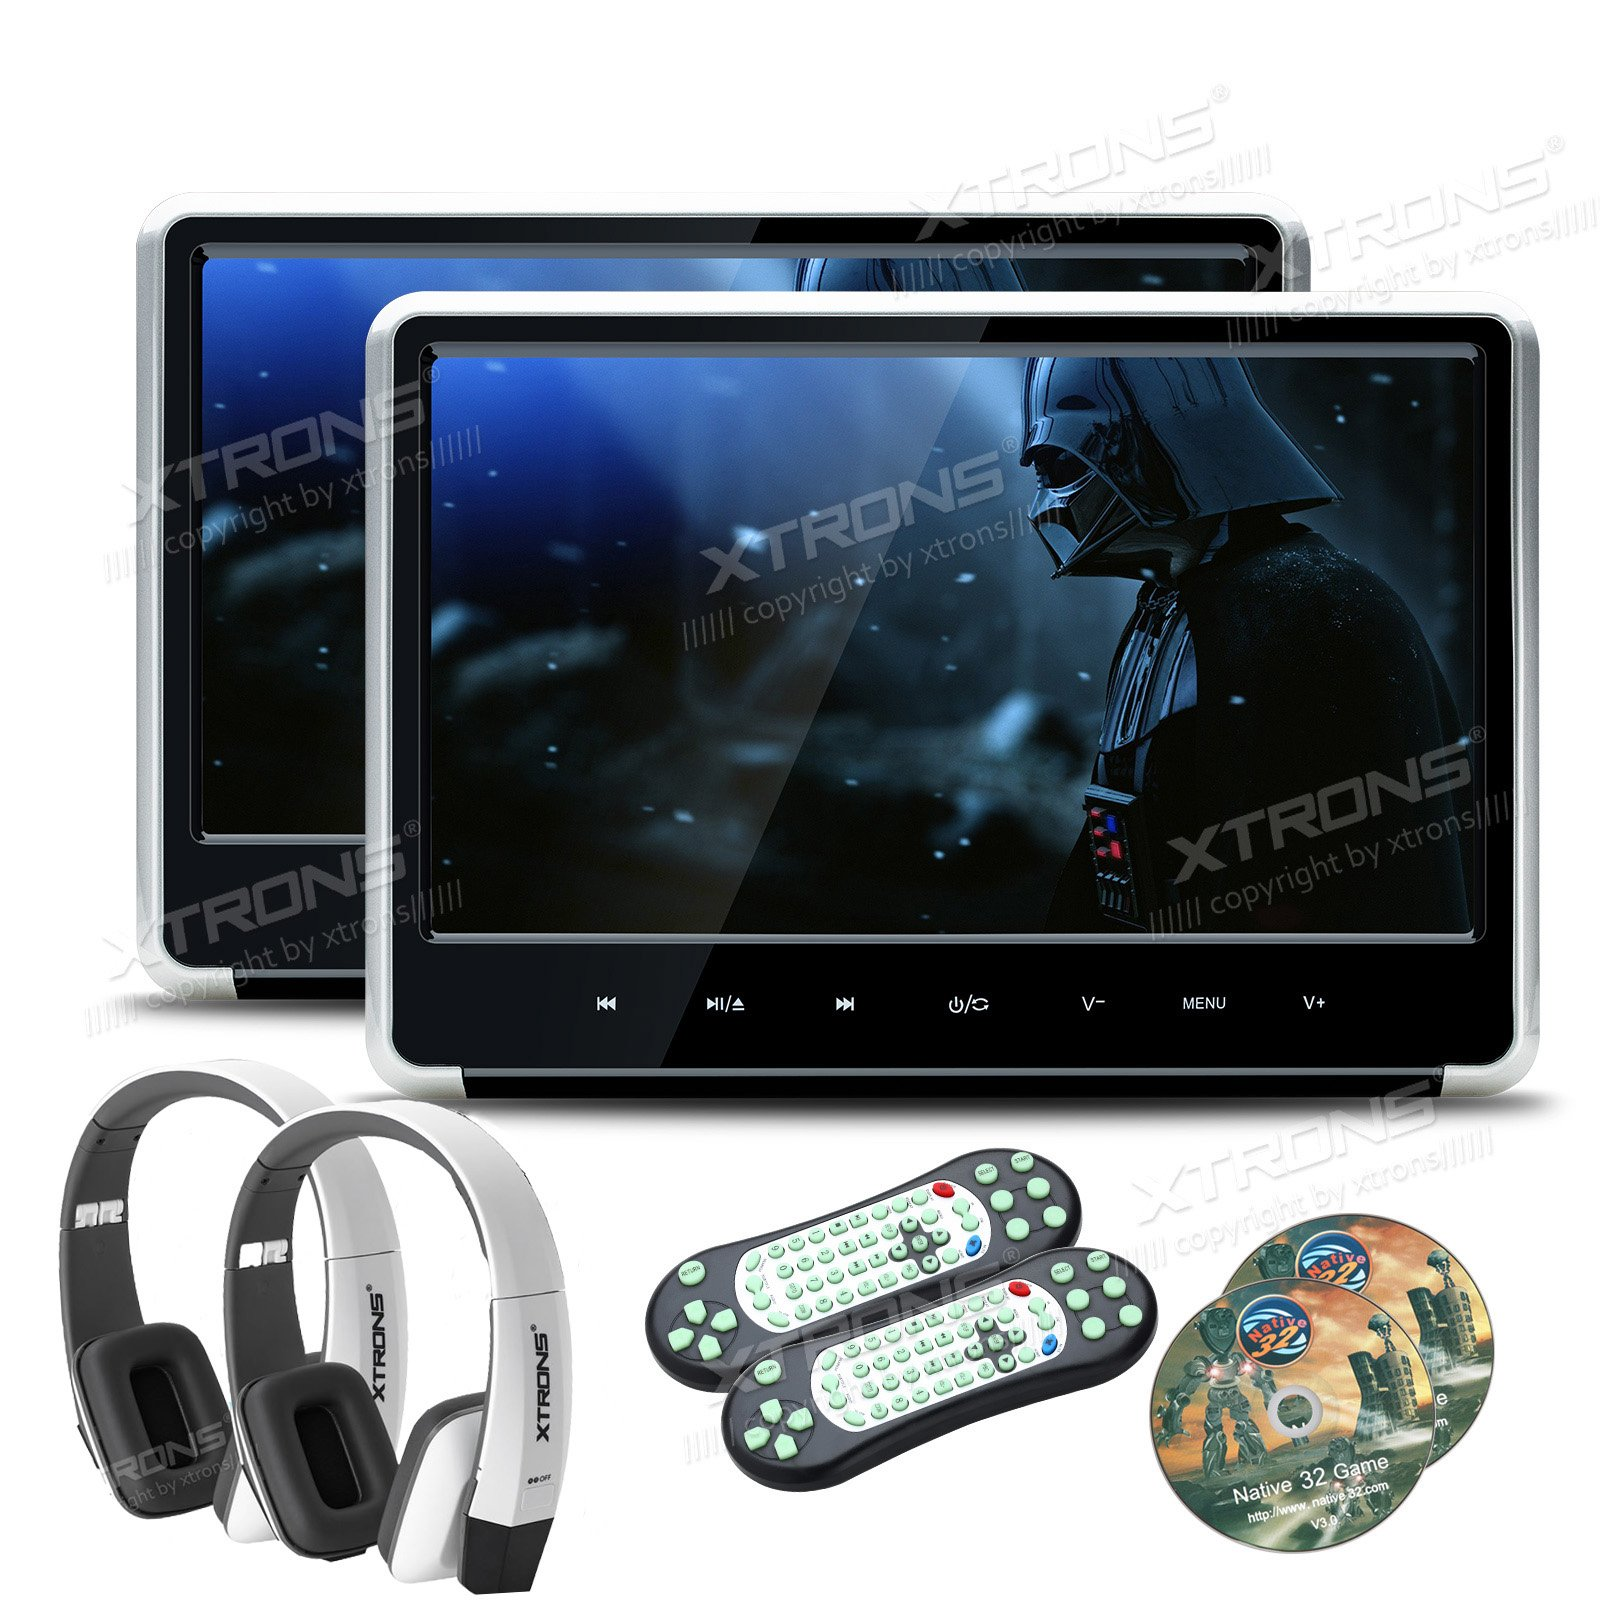 XTRONS Silver 2x 11.6 Inch Pair HD Digital Touch Panel Car Auto Headrest Active DVD Player Kid Games Built-in HDMI Port New Version White Headphones Included